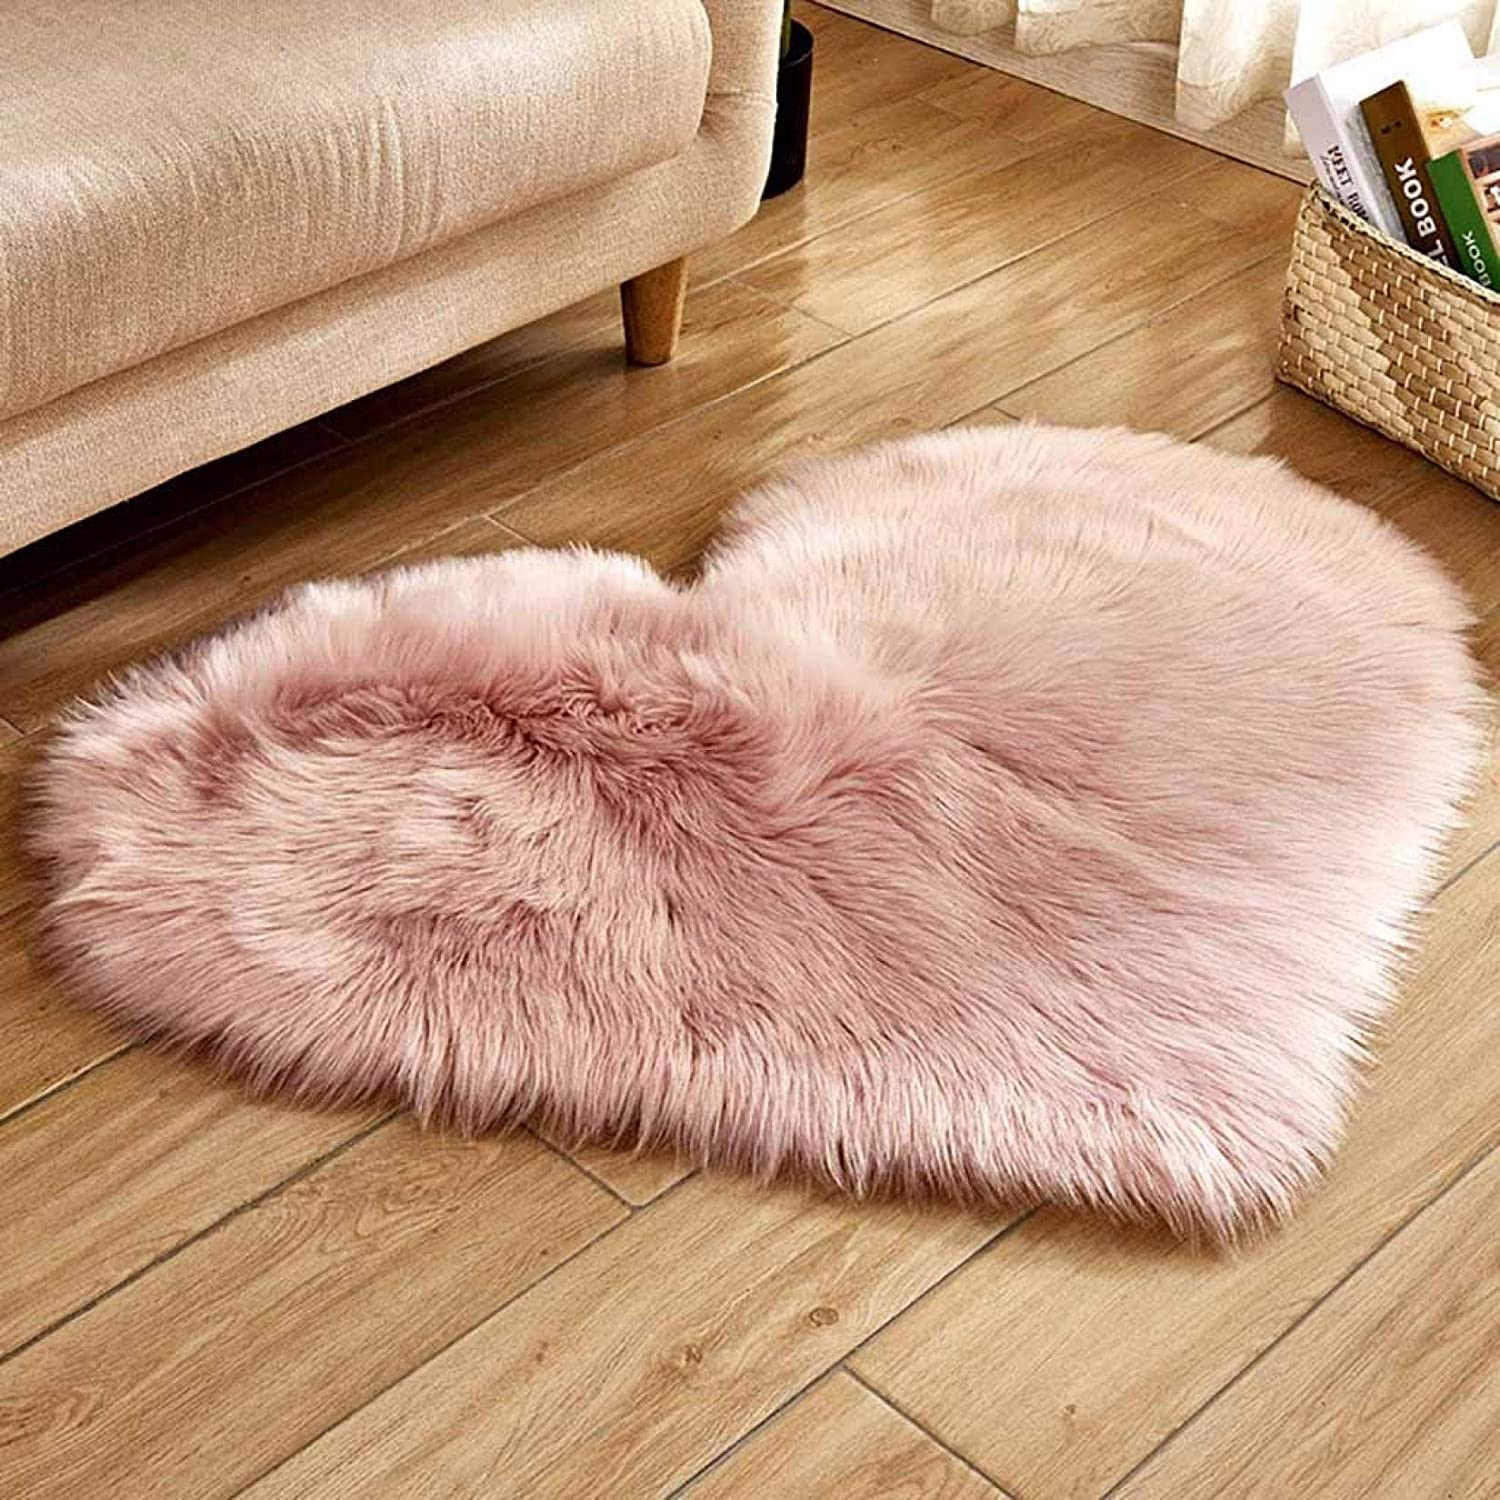 ERIUAES Super Soft Faux Fur Area Rug Chair Cover Seat Pad Fuzzy Area Mat for Bedroom Floor Sofa Living Room 30cmx40cm/12''x16'' (Pink)